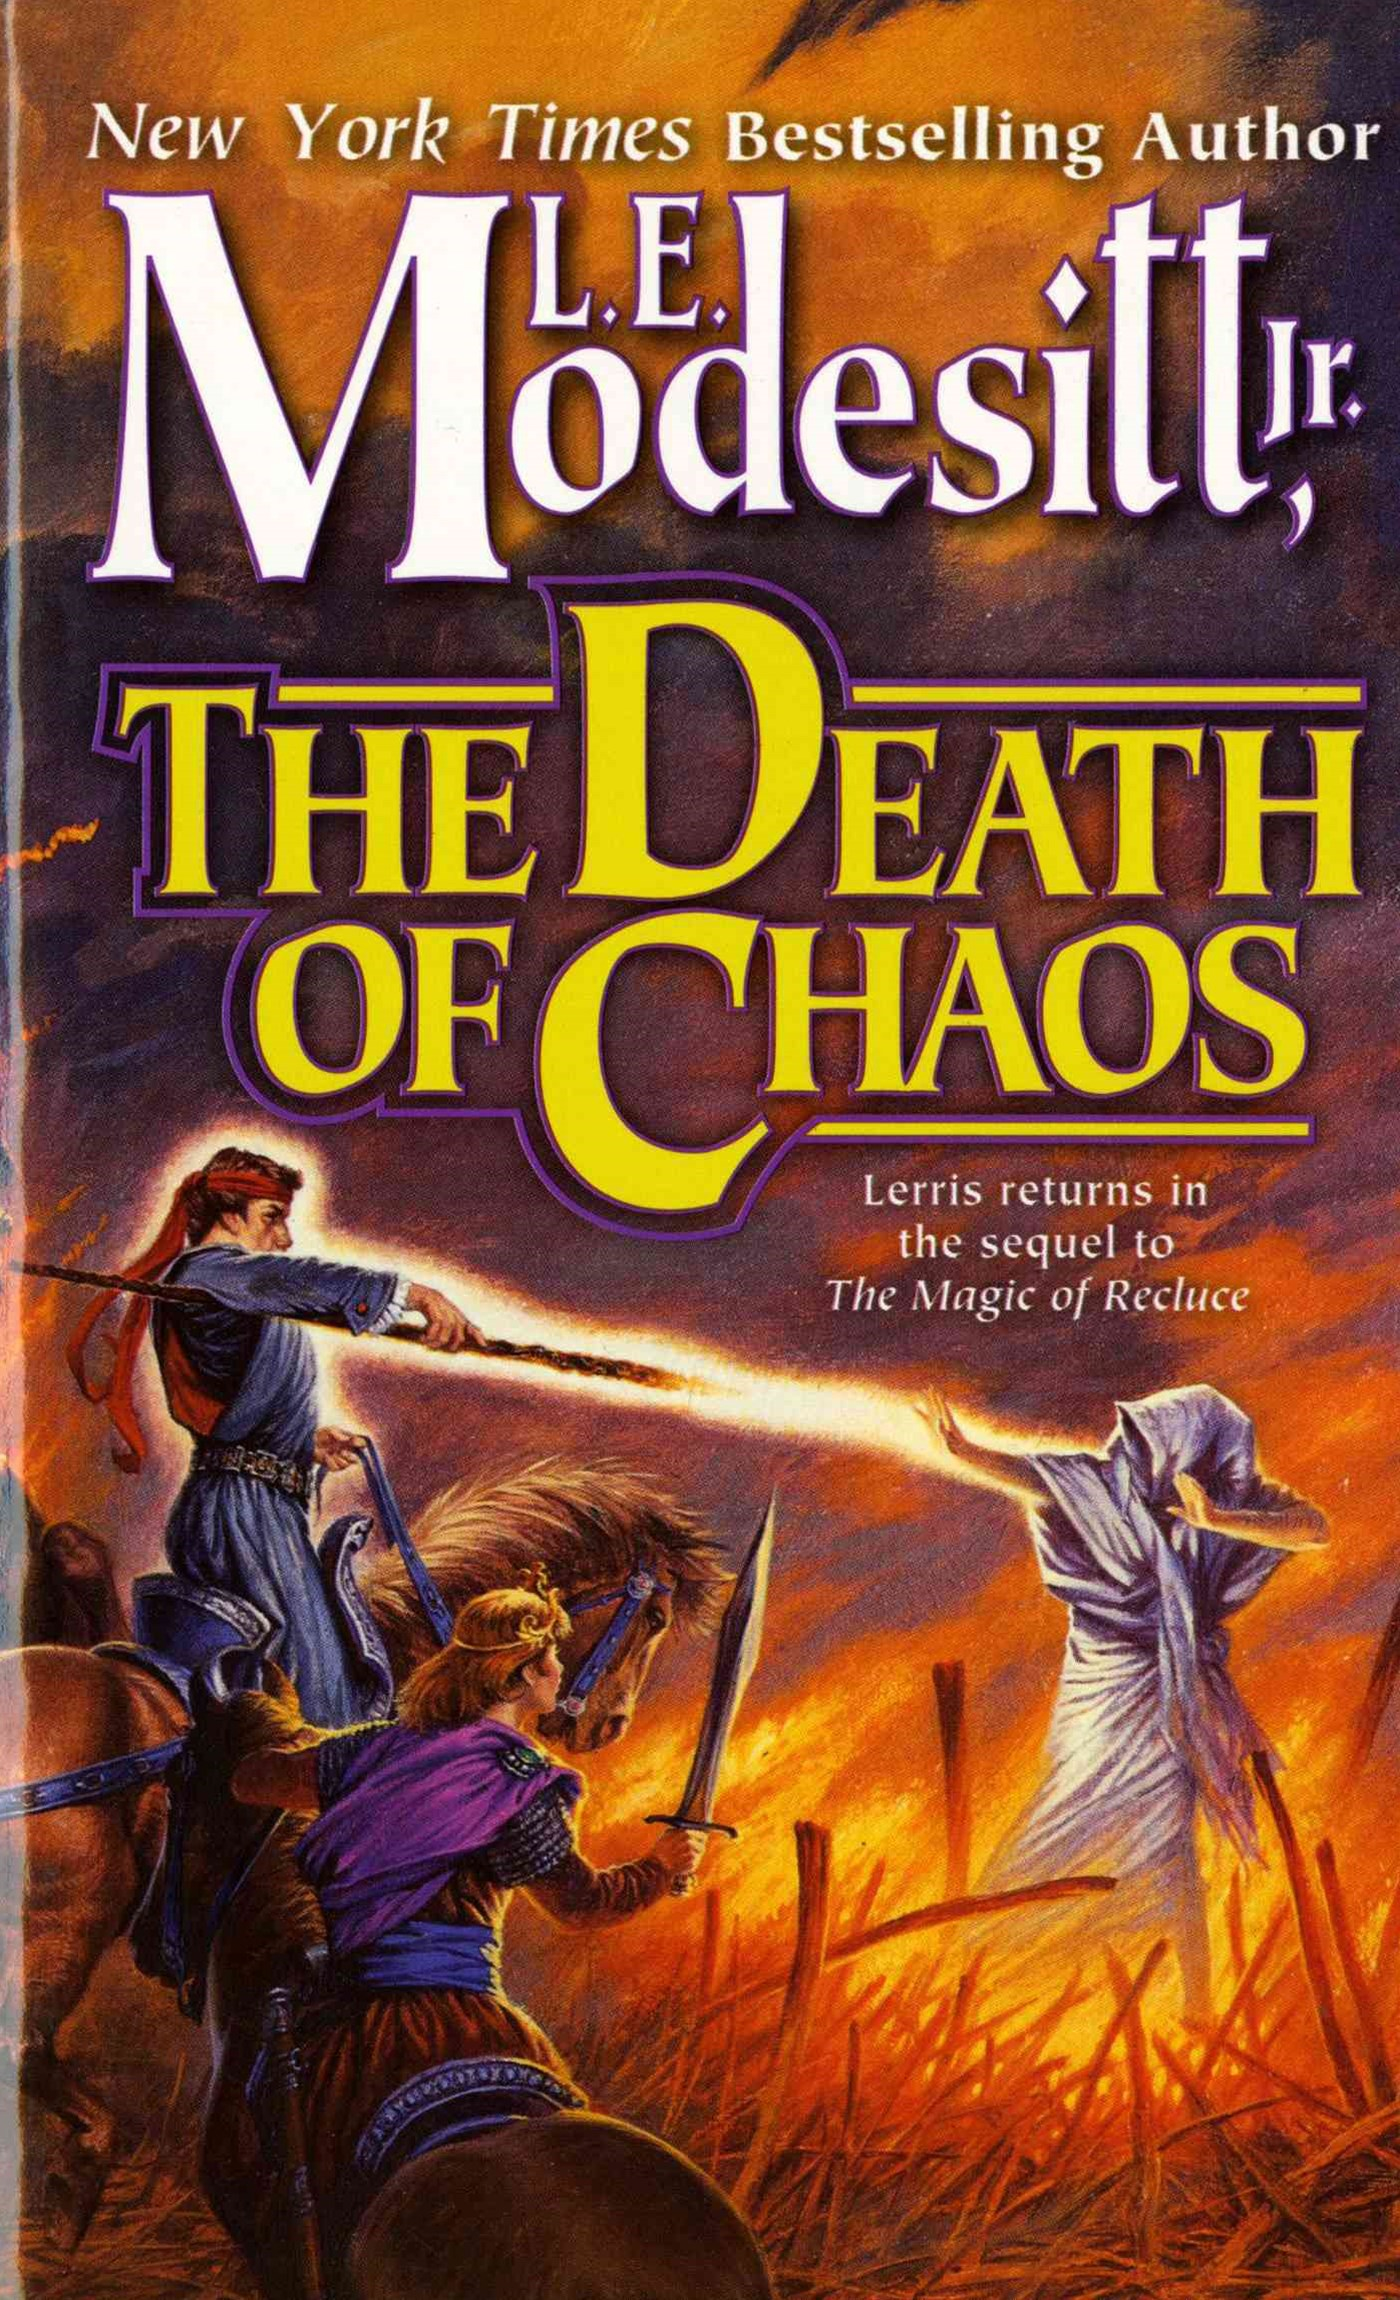 The Death of Chaos